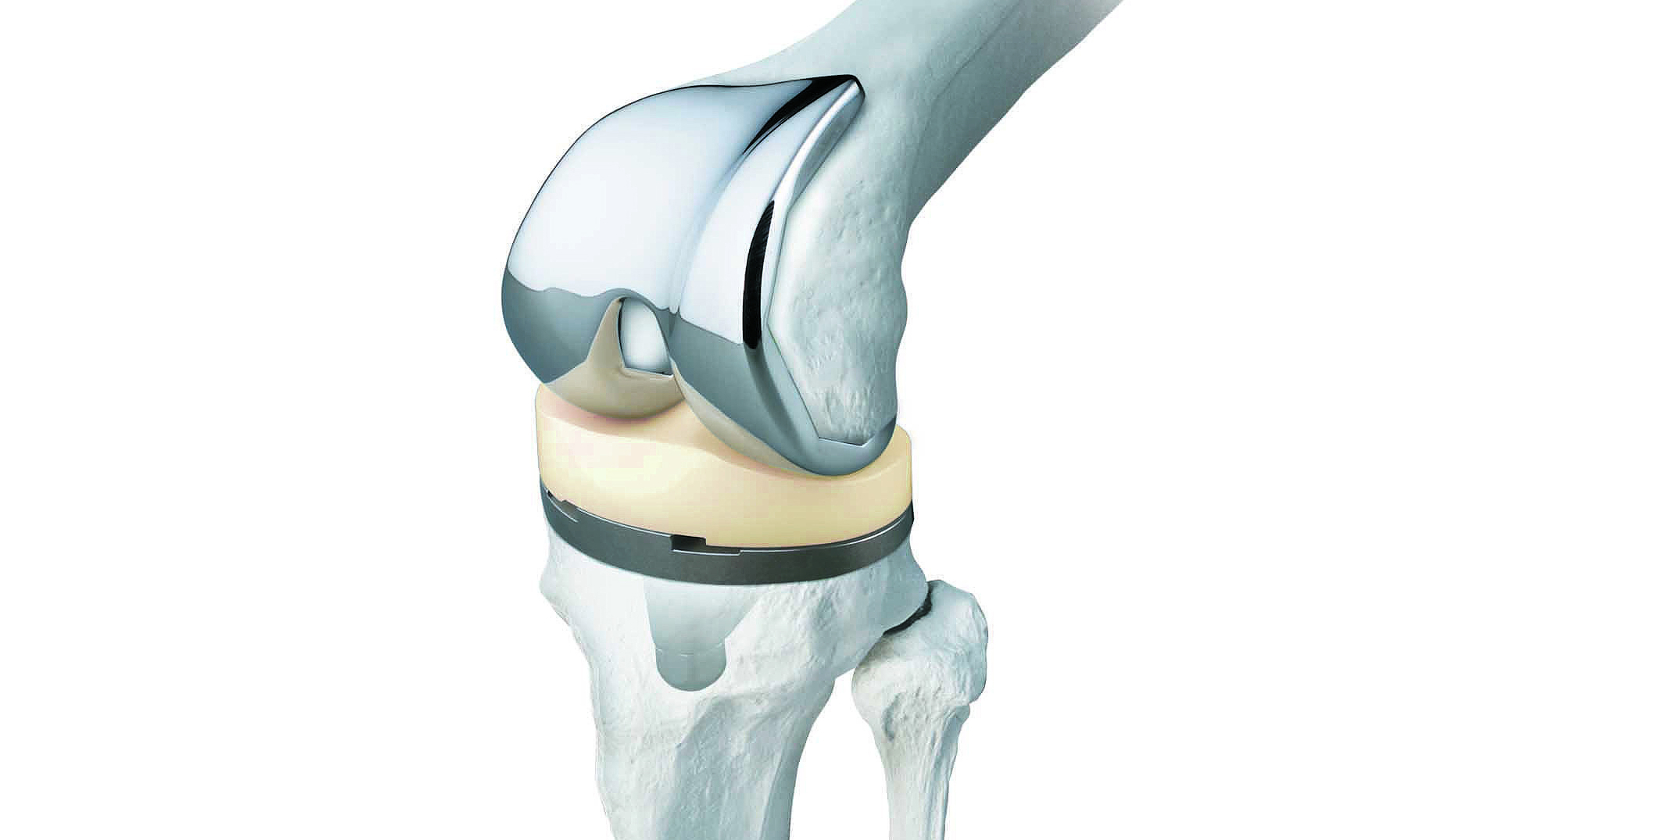 Why Choose The Best Orthopaedic Implants Manufacturers For Your Joint Needs?